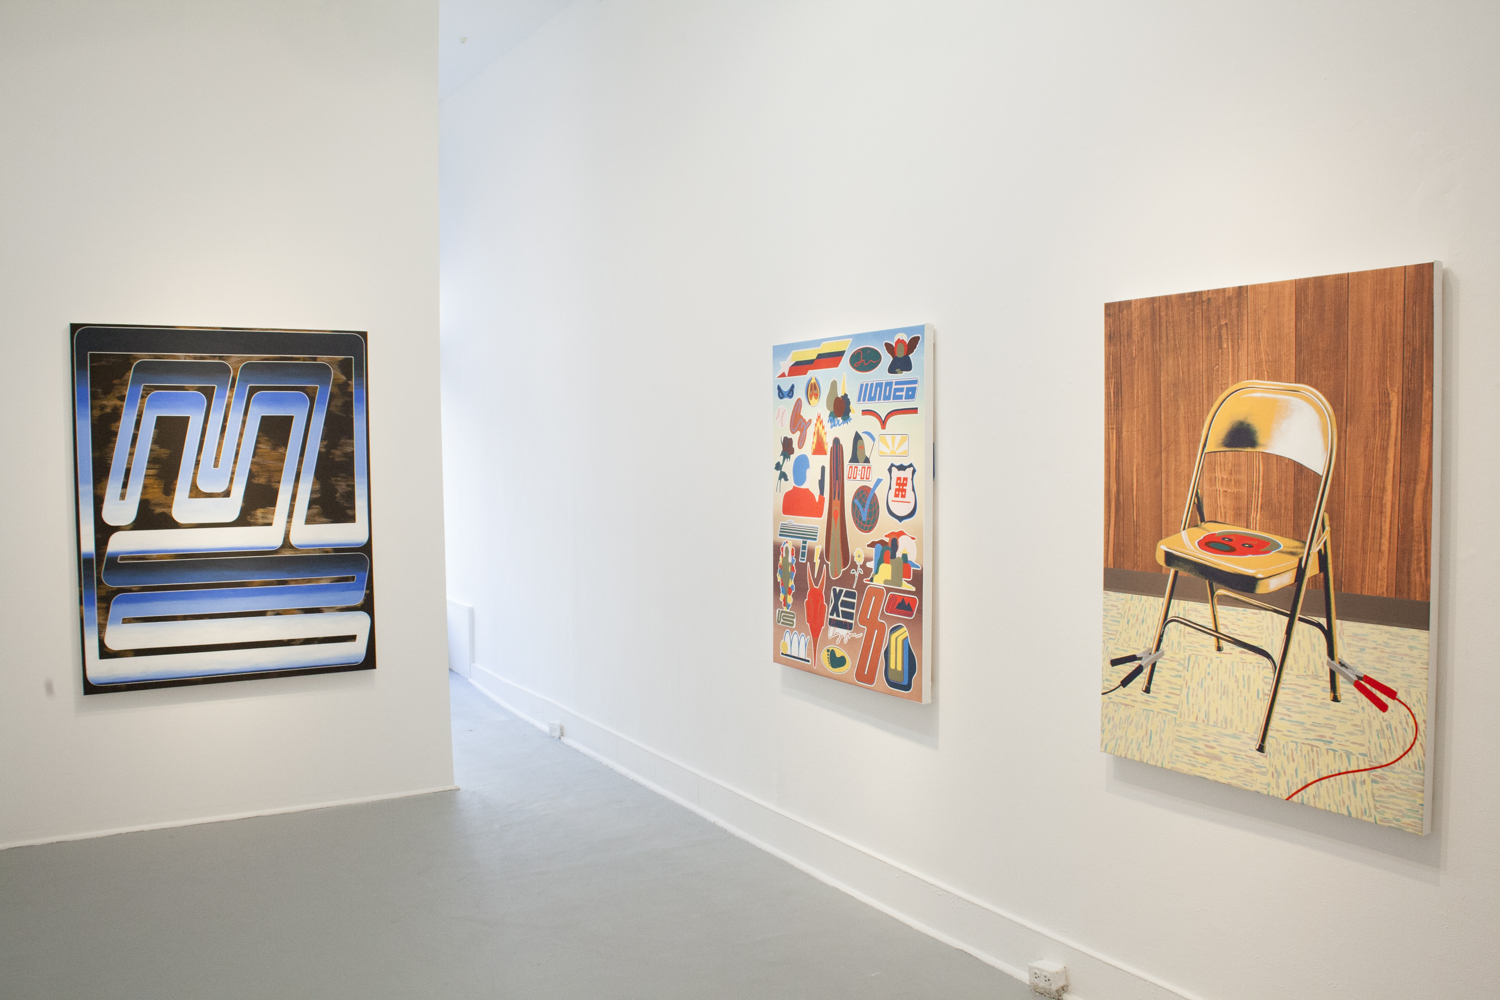 Installation view. Courtesy of Ever Gold Gallery.